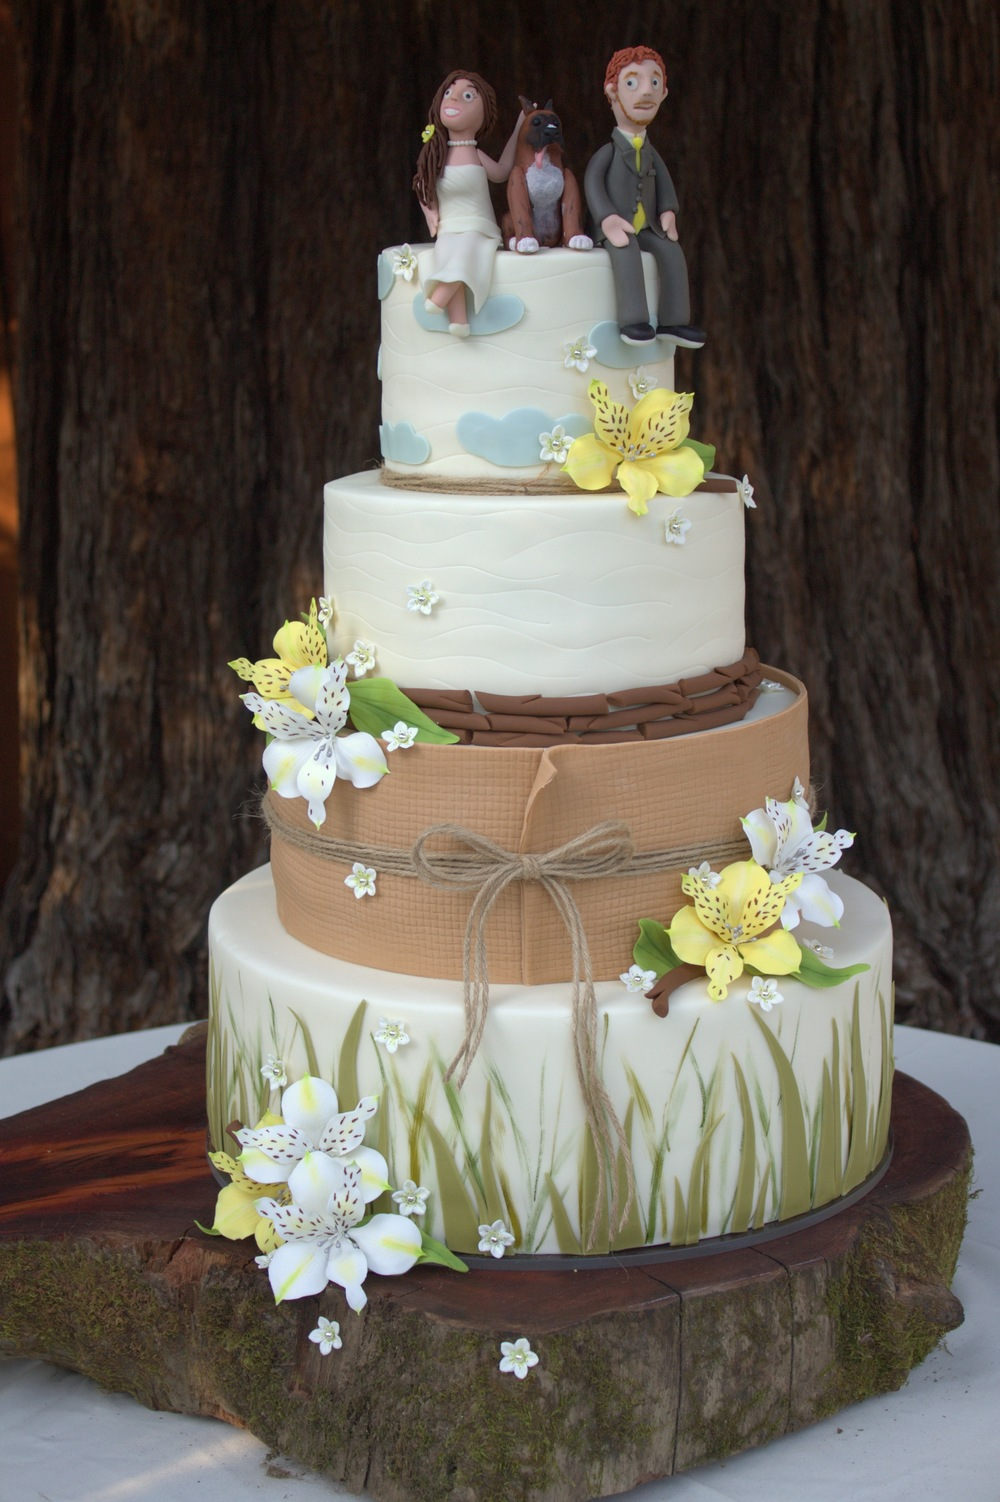 cooplands bakery wedding cakes 5 great alternatives to boring wedding cakes in 12945